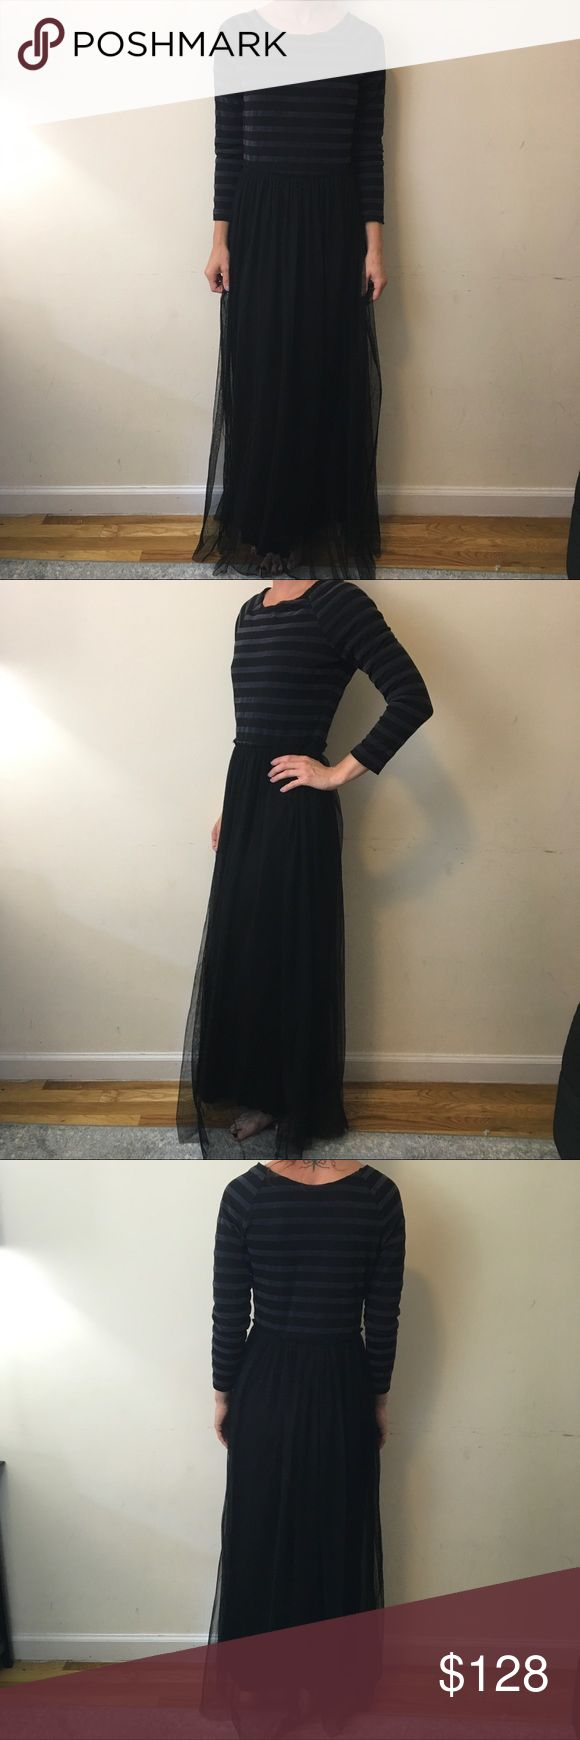 Free People Black Striped Velvet Maxi Tulle Dress Free People Dress with long sleeves and a boat like neckline- has a grey striped velvet like top and a black tulle bottom skirt lined and is super cute stretchy and can fit a medium also! Gorgeous and has been worn lightly has some wear on the inside could use a dry cleaning Free People Dresses Maxi